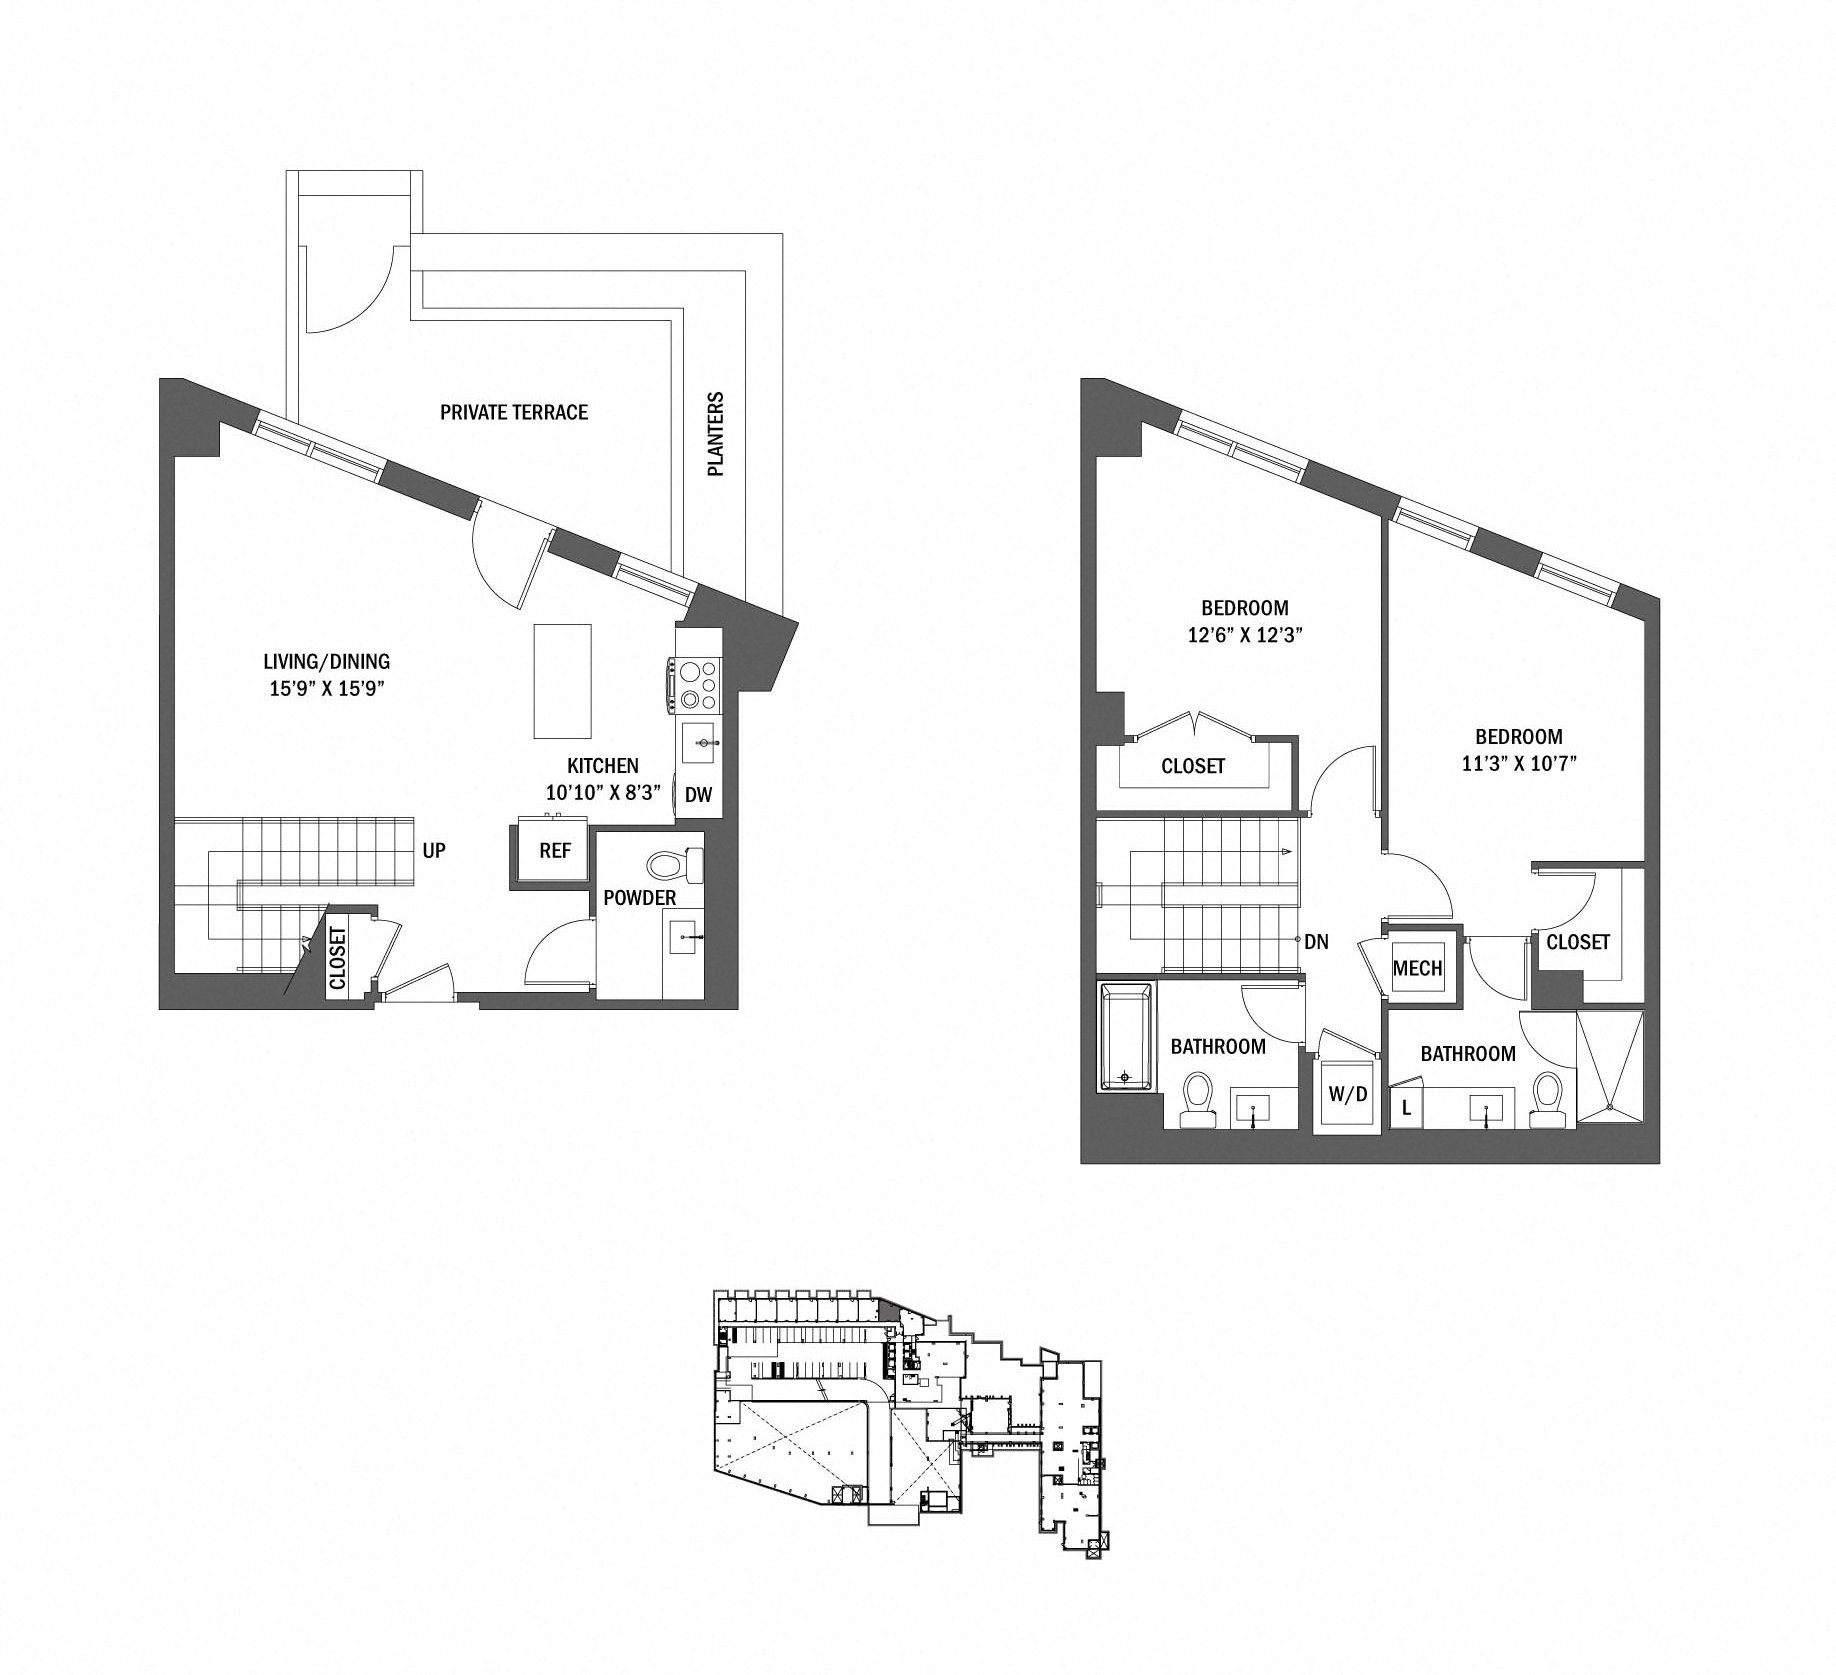 P0625338 n09 gp 2 floorplan(1)